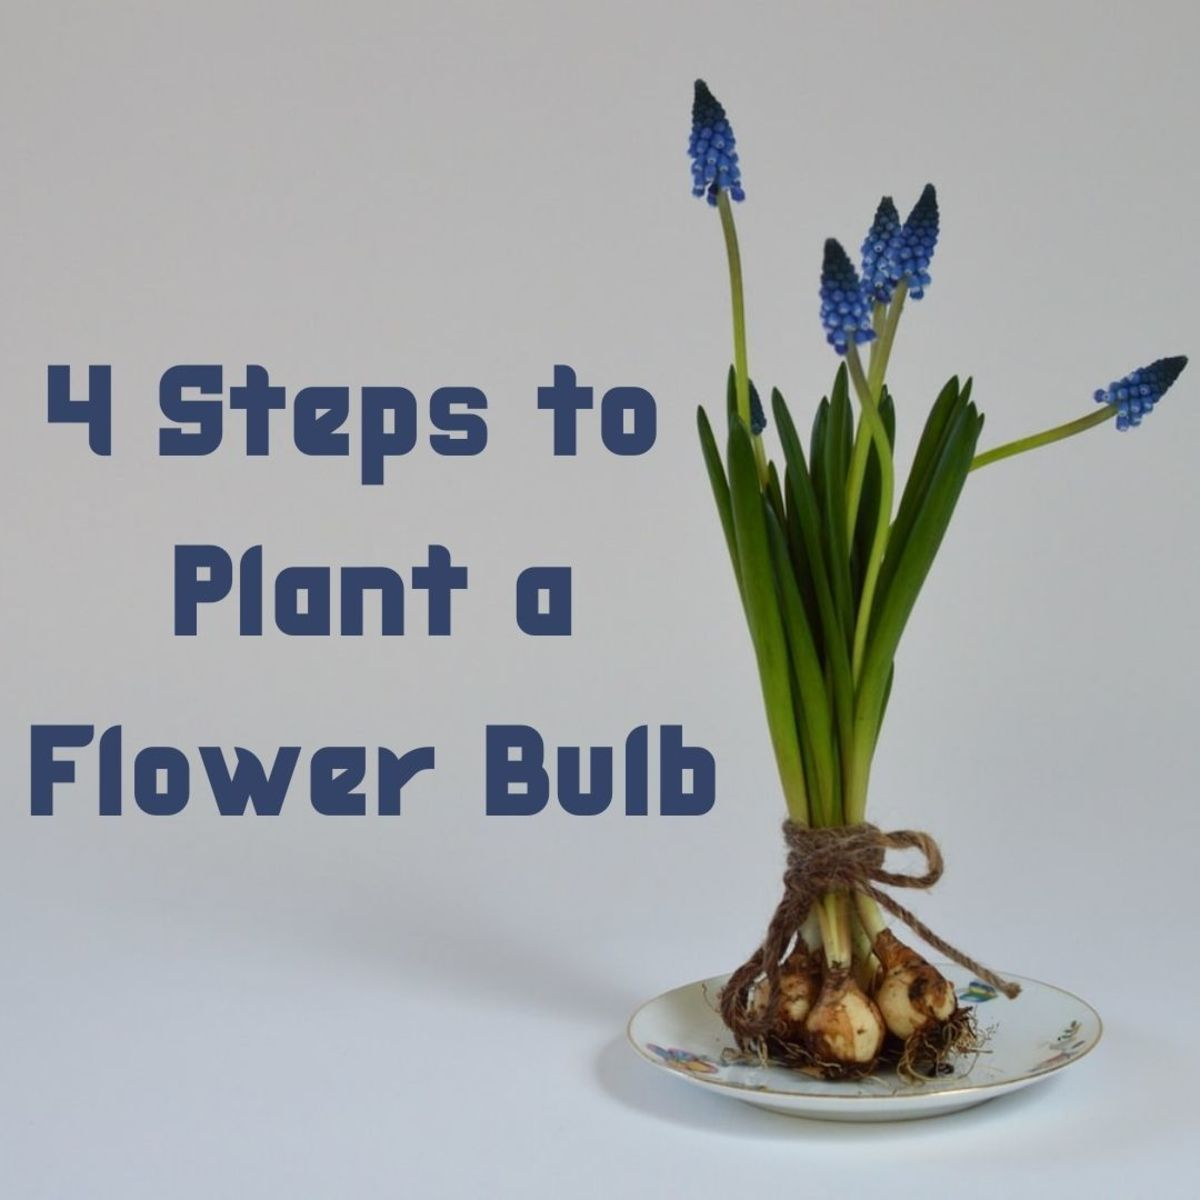 Bulbs produce flowers in the spring.